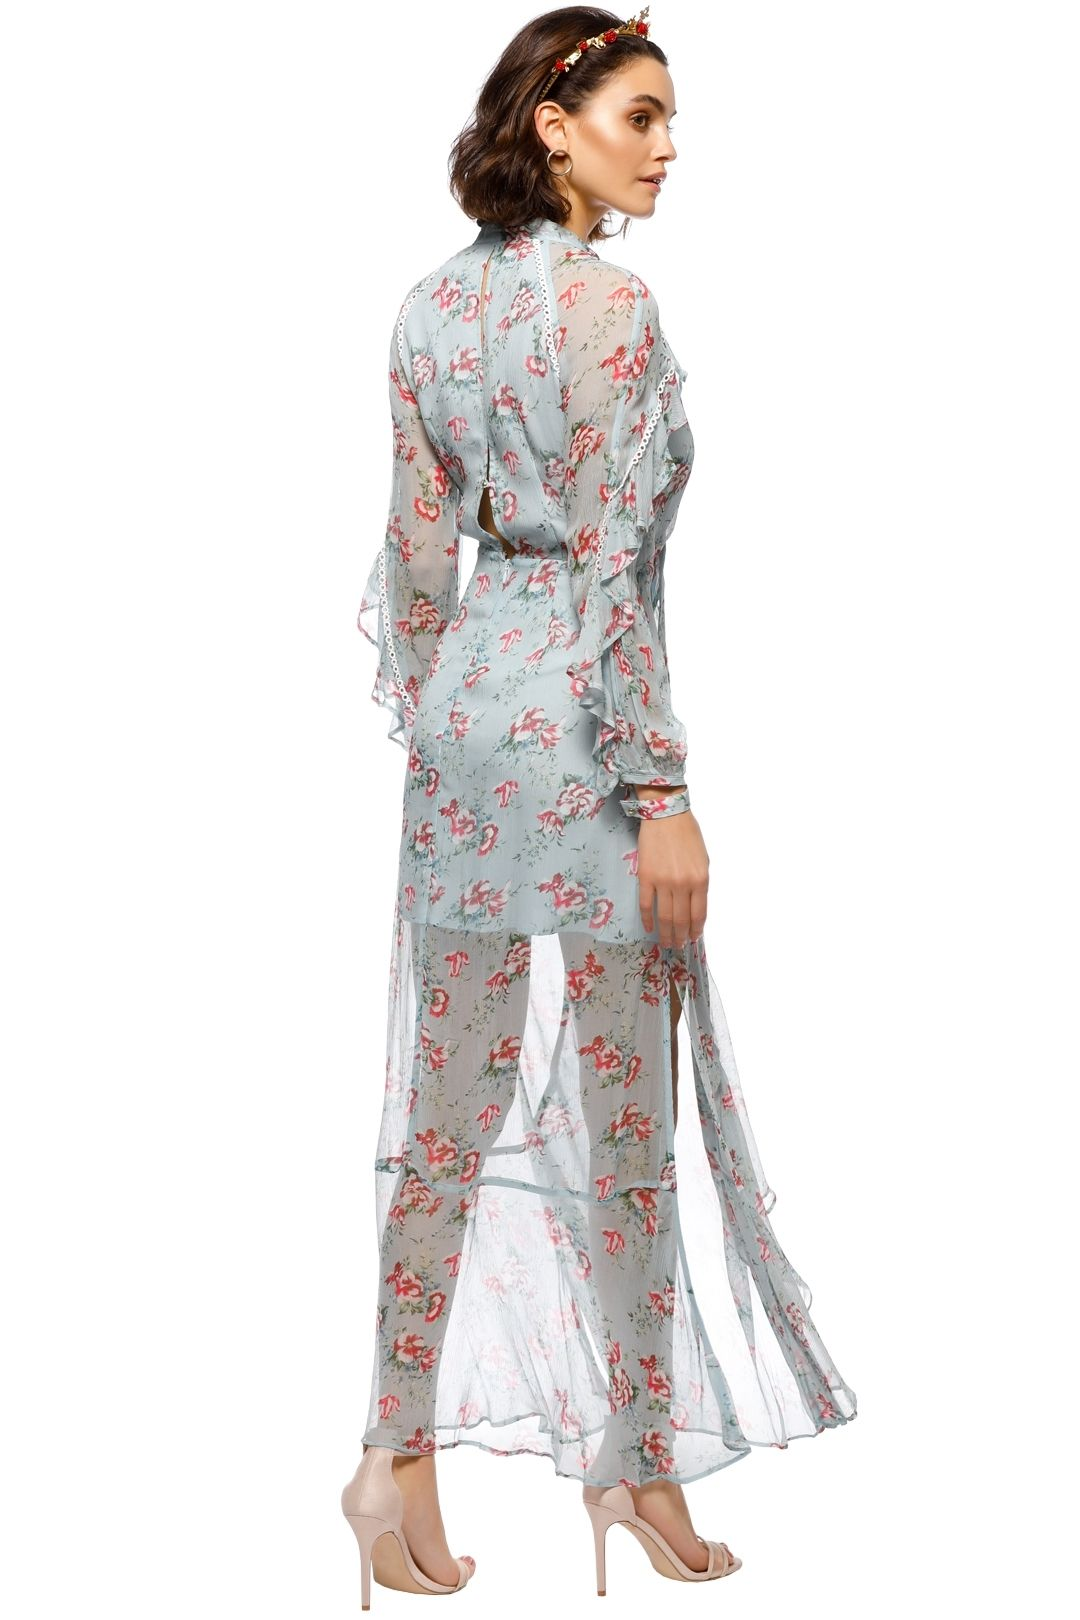 Talulah - The Knowing Midi Dress - Blue Floral - Back